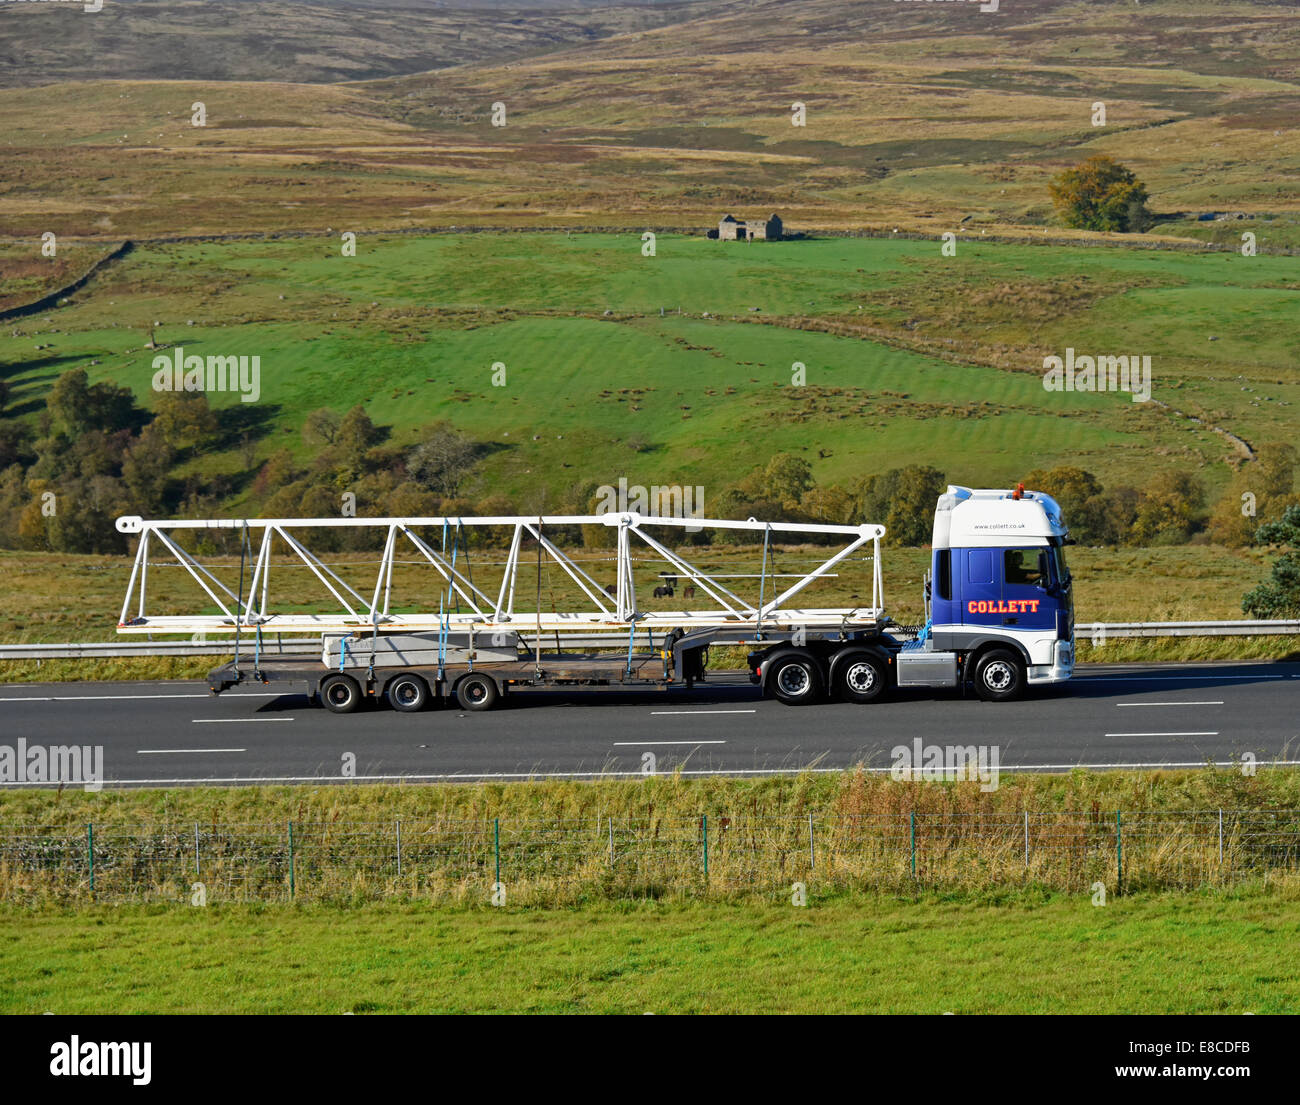 Collett HGV with load of steelwork. M6 Motorway, northbound. Shap, Cumbria, England, United Kingdom, Europe. - Stock Image